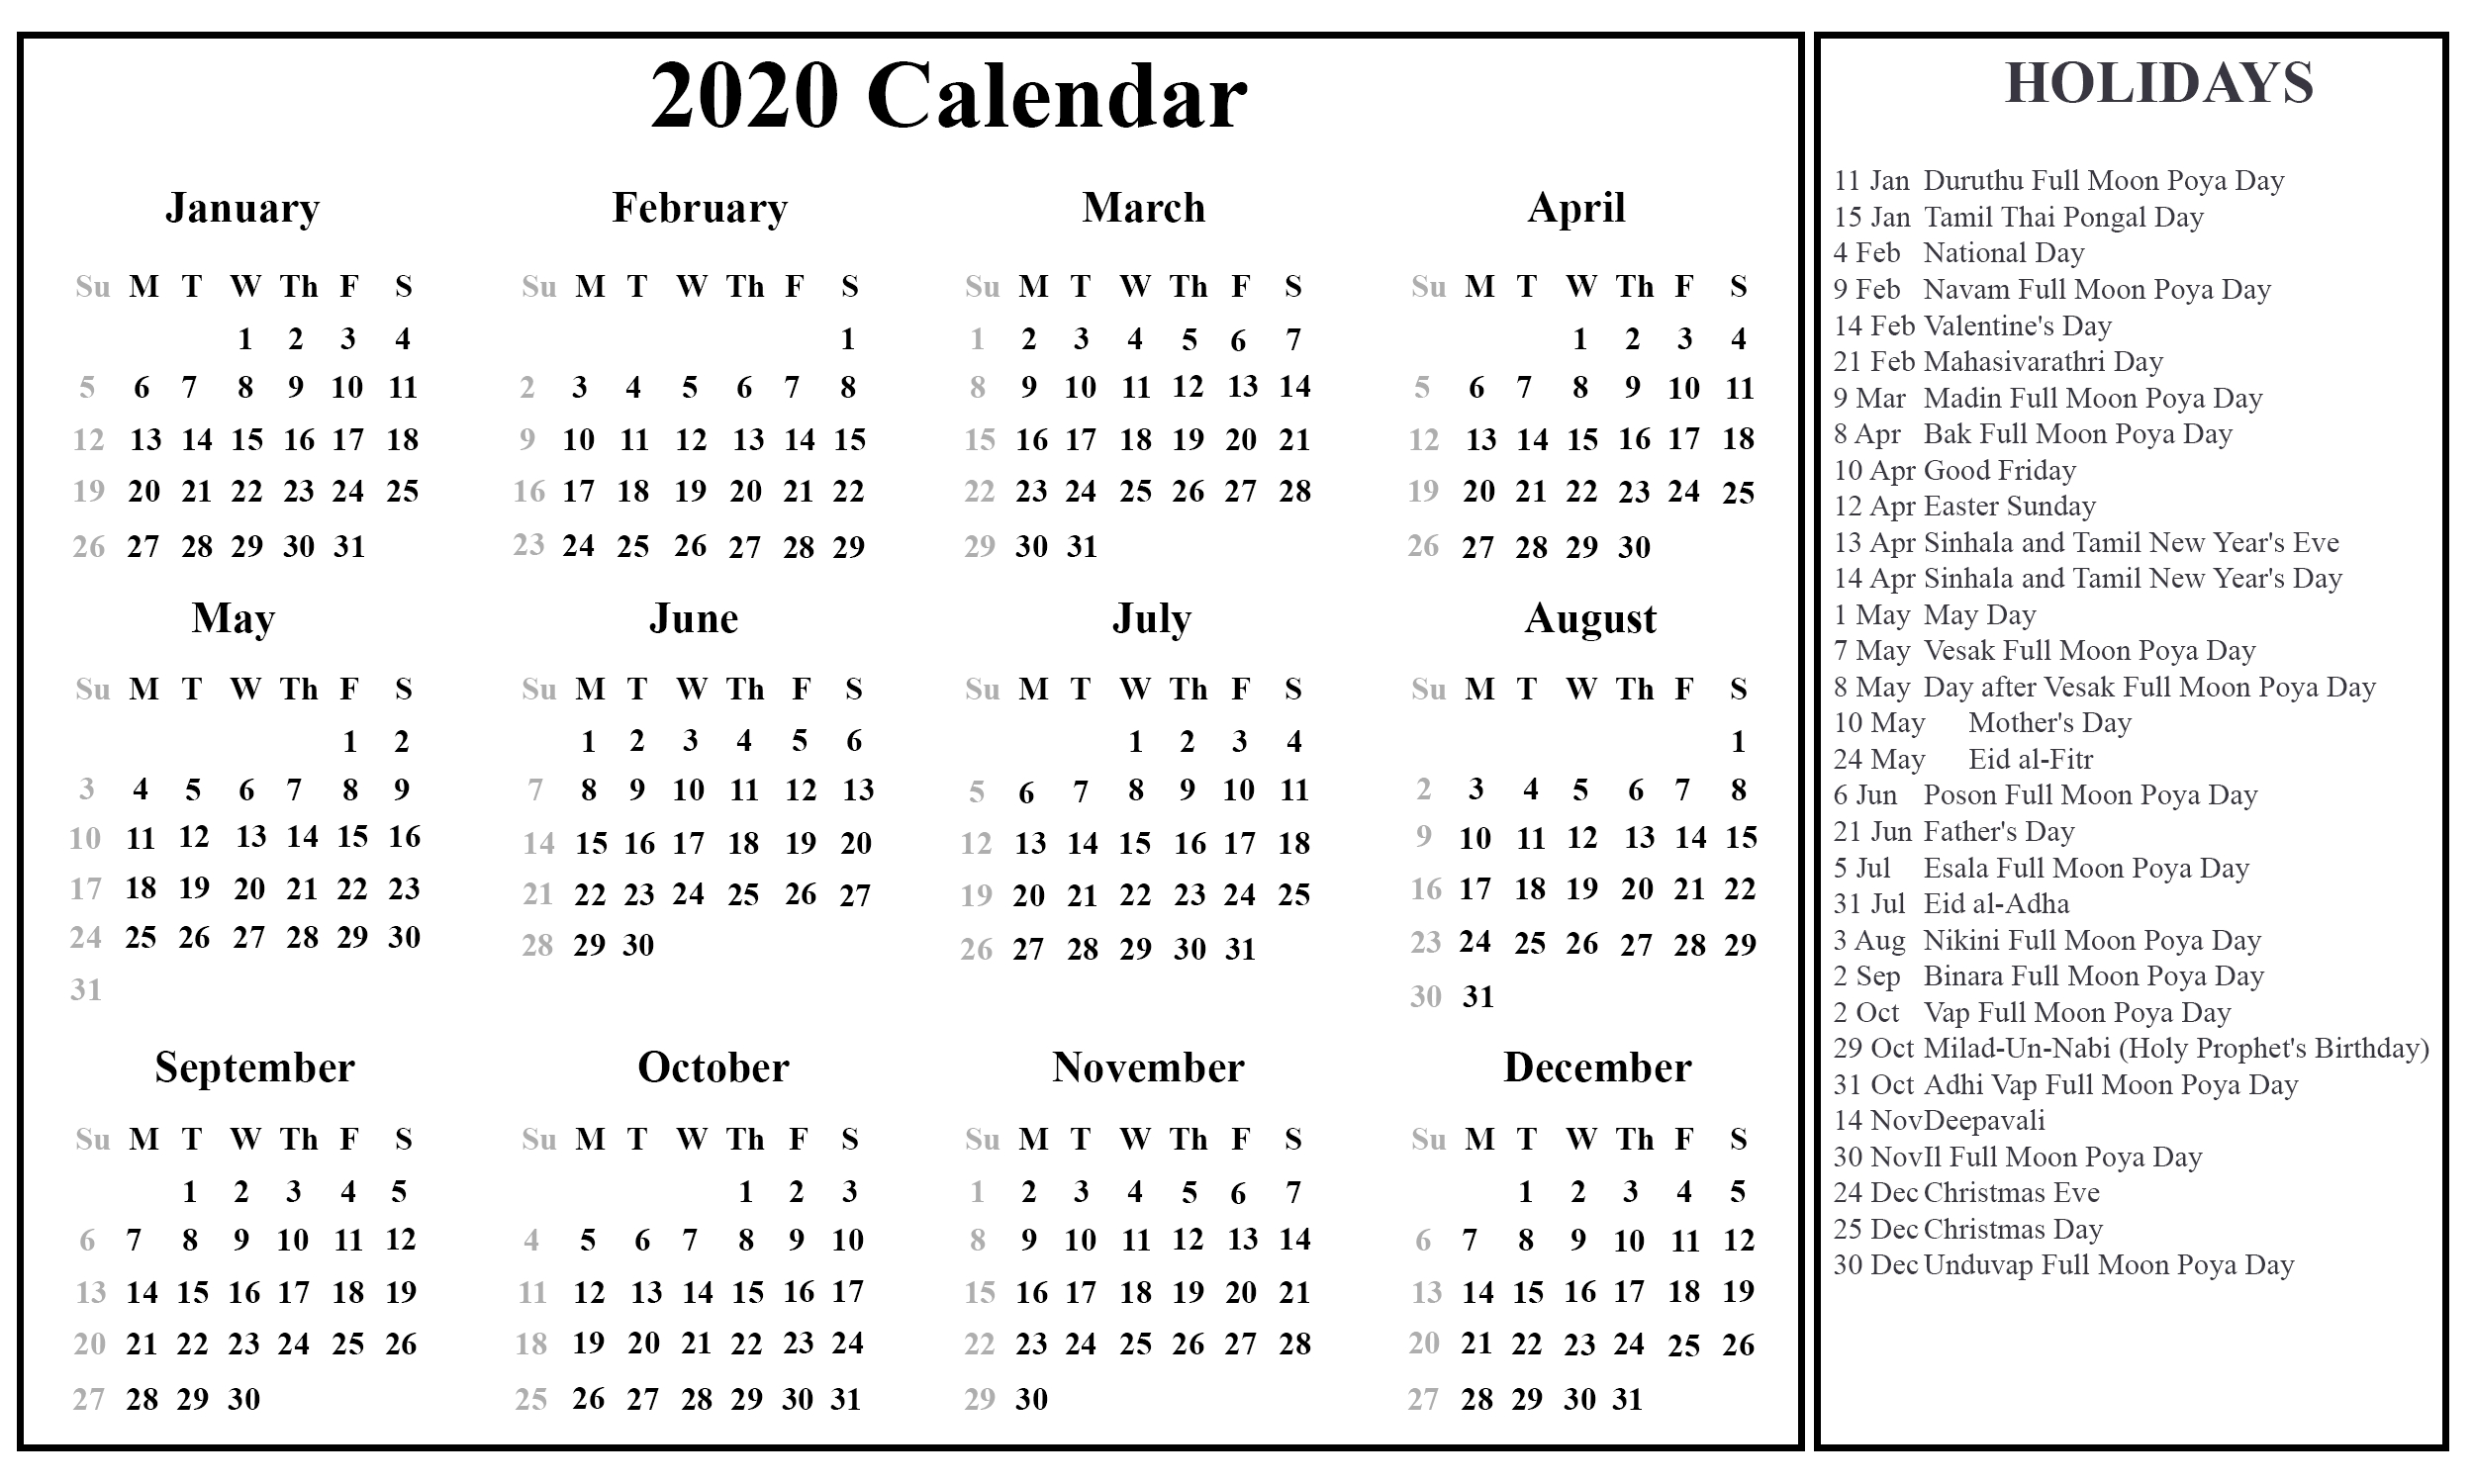 Download Free Sri Lanka Calendar 2020 In Pdf, Excel & Word-January 2020 Calendar Pongal